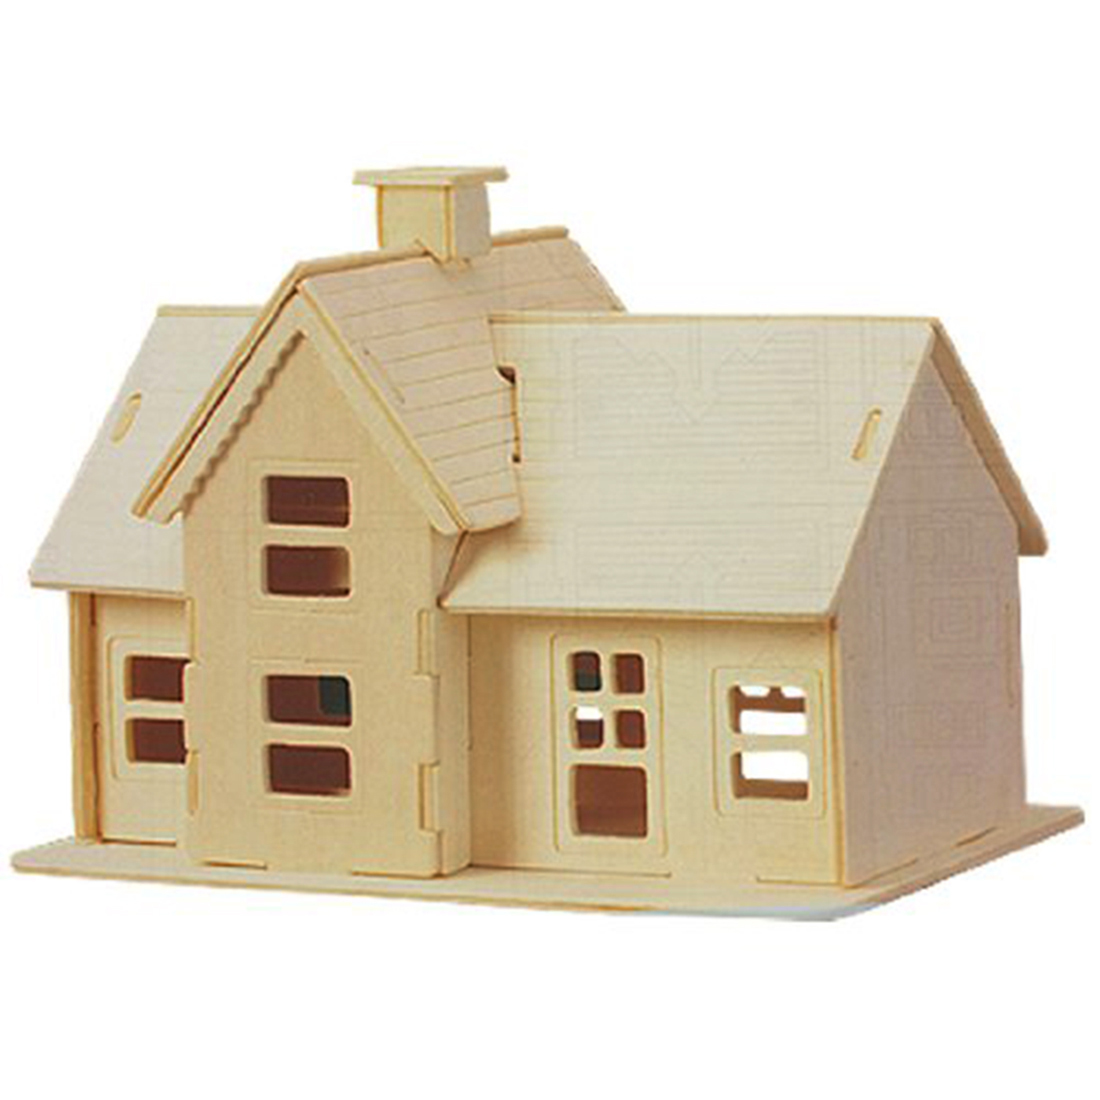 new children 3d wooden country station model puzzle toy. Black Bedroom Furniture Sets. Home Design Ideas